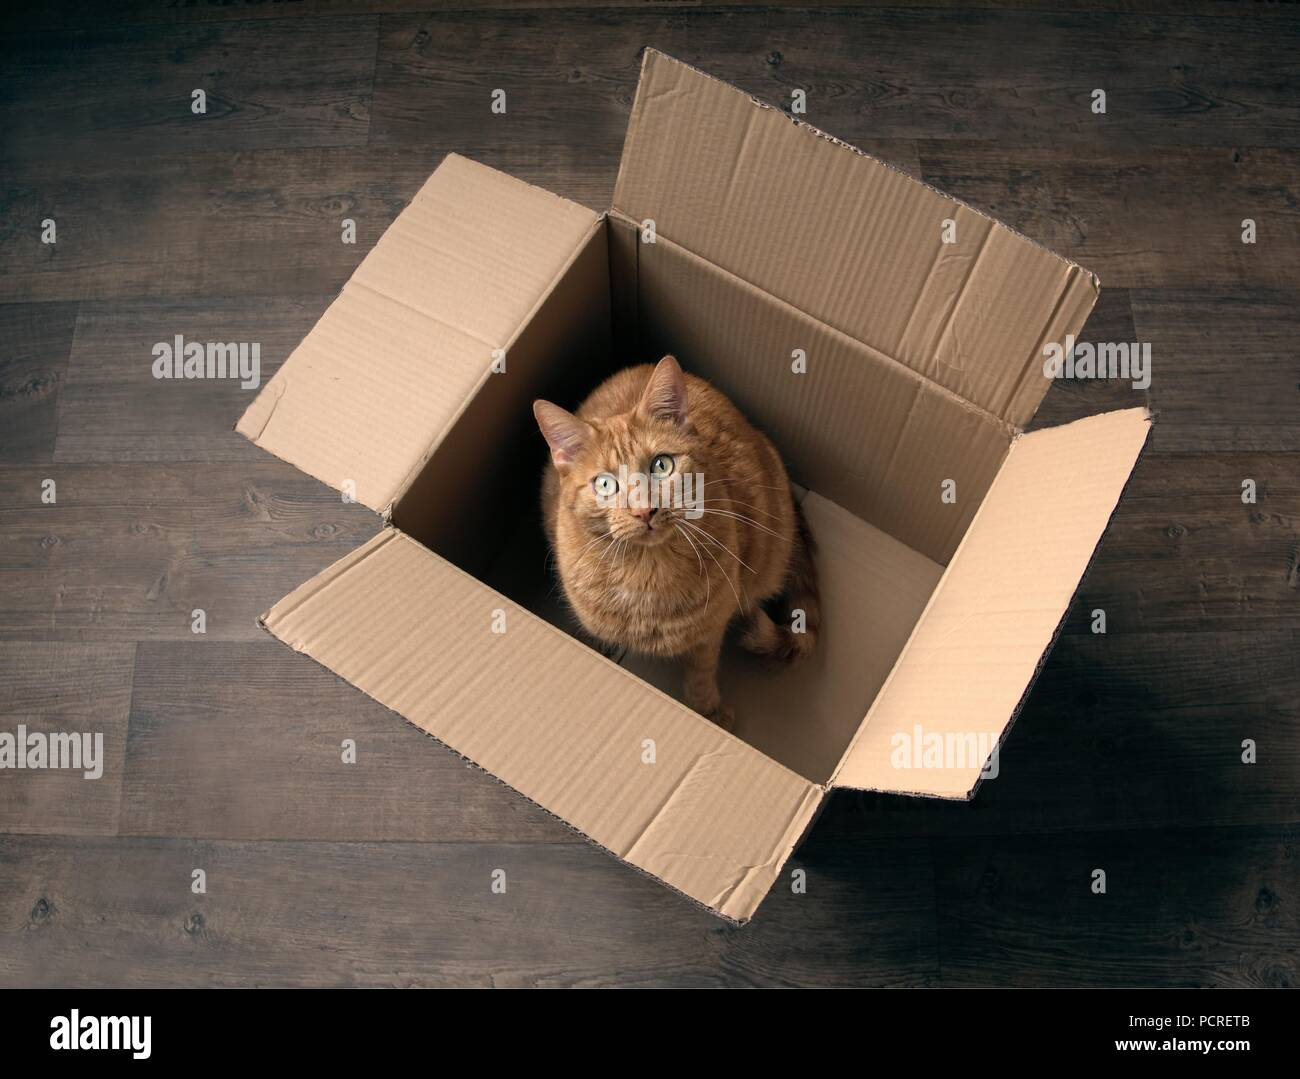 Cute ginger cat sitting in a cardboard box on a wooden floor and looking curious to the camera. - Stock Image